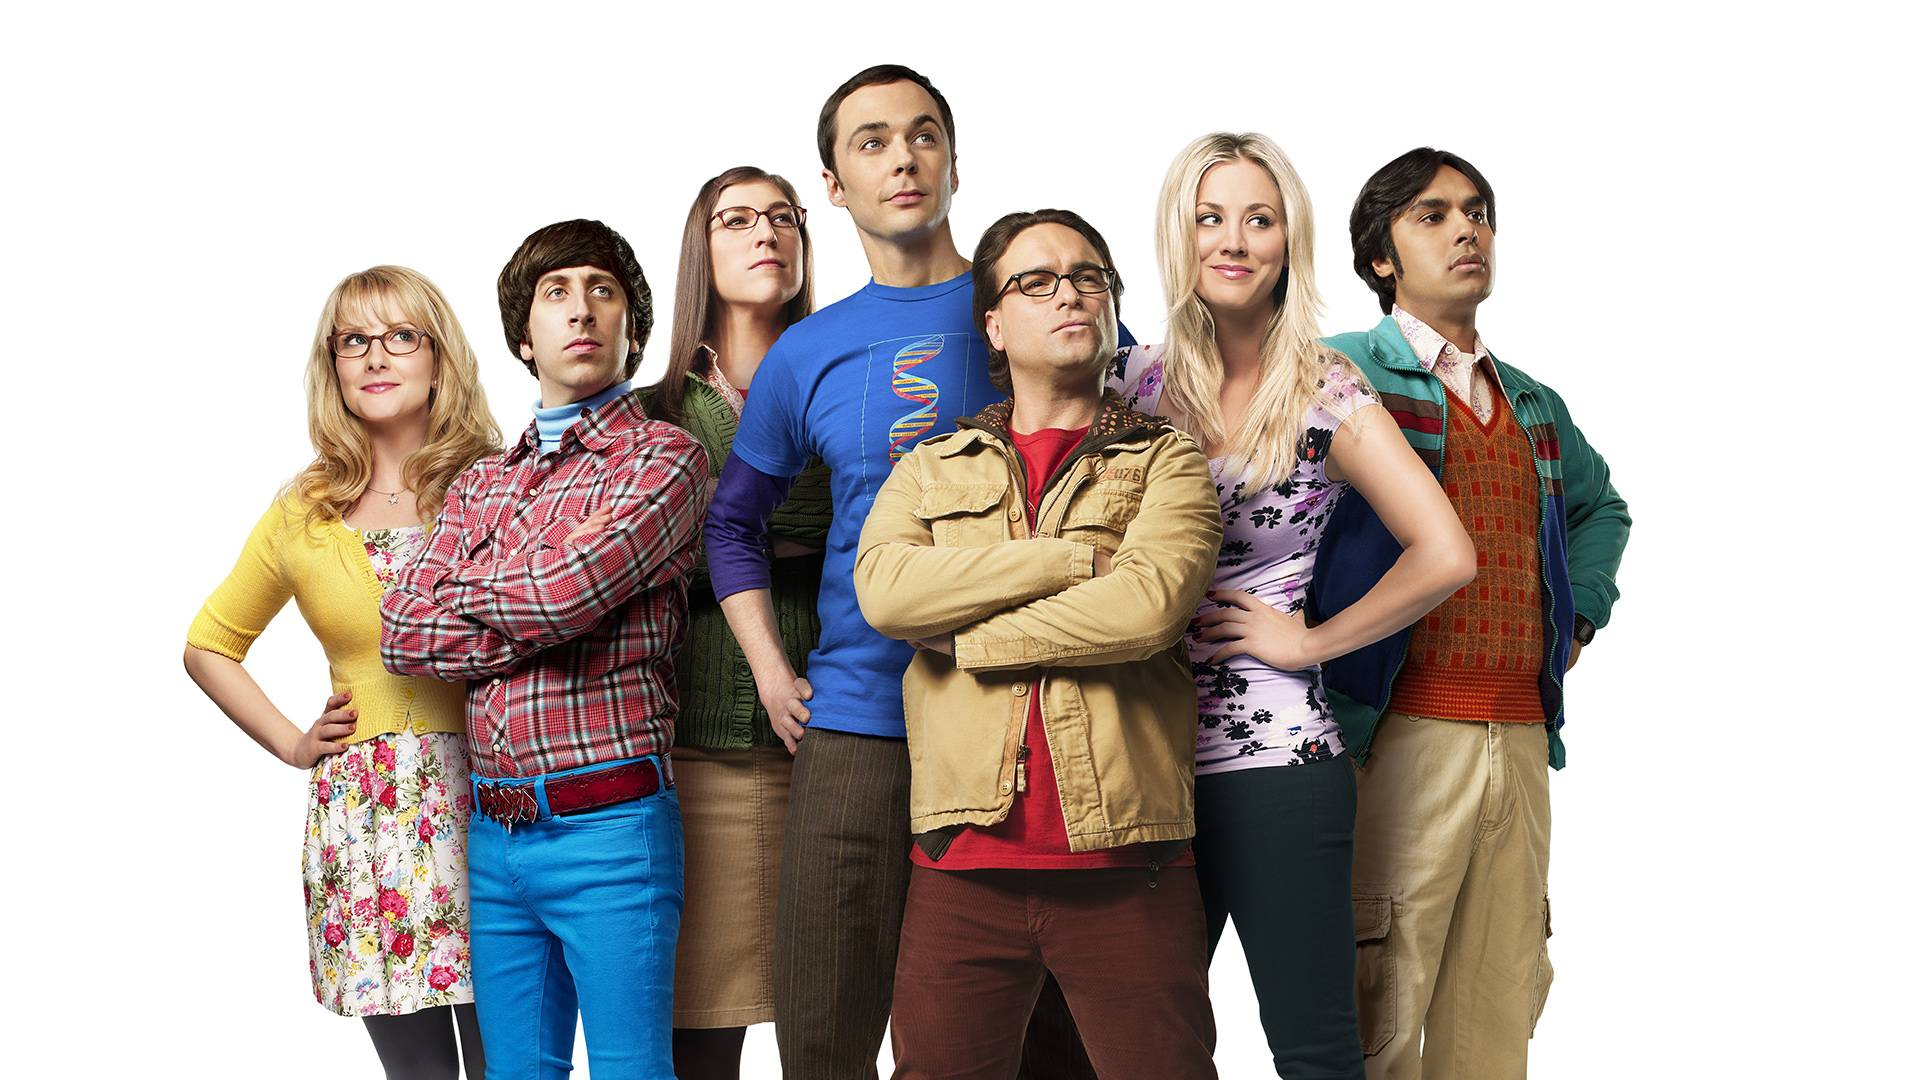 'The Big Bang Theory' just did what no TV show has ever done before